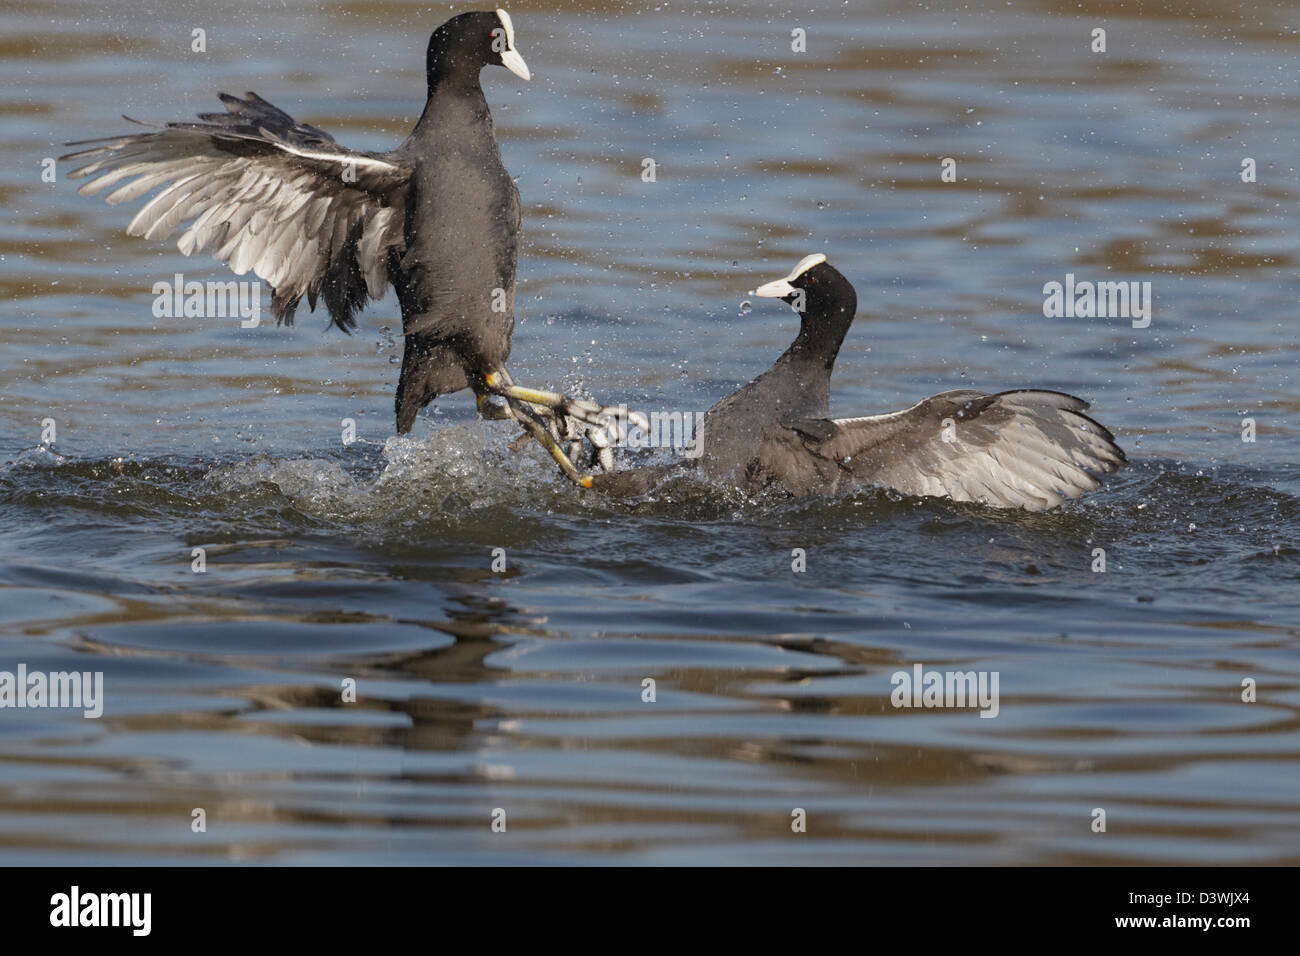 Coot (Fulica atra) fighting - Stock Image